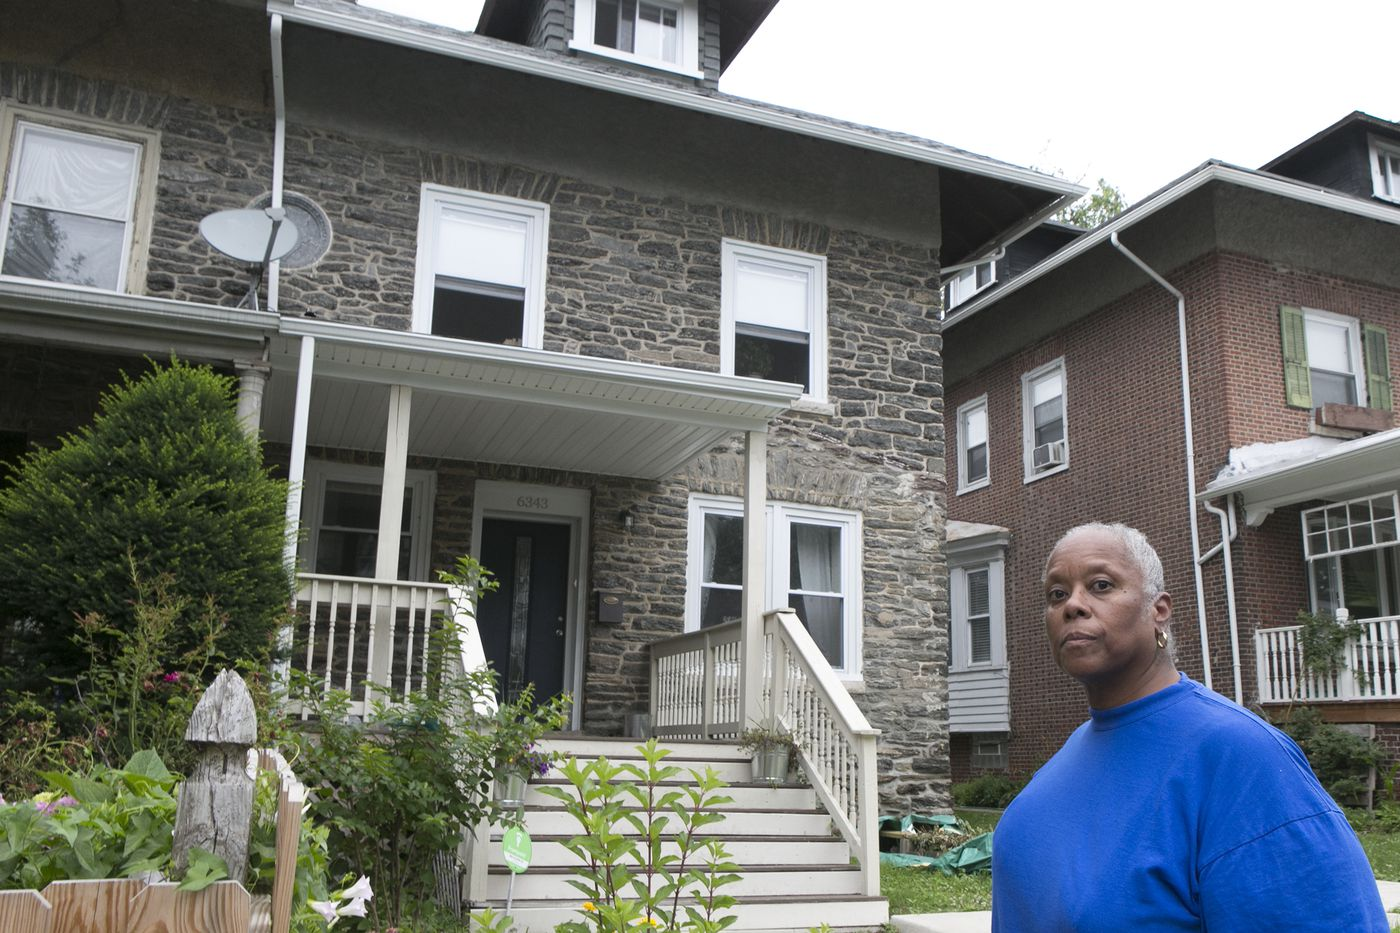 A Philadelphia story: Falsely declared dead, home stolen and no one will help